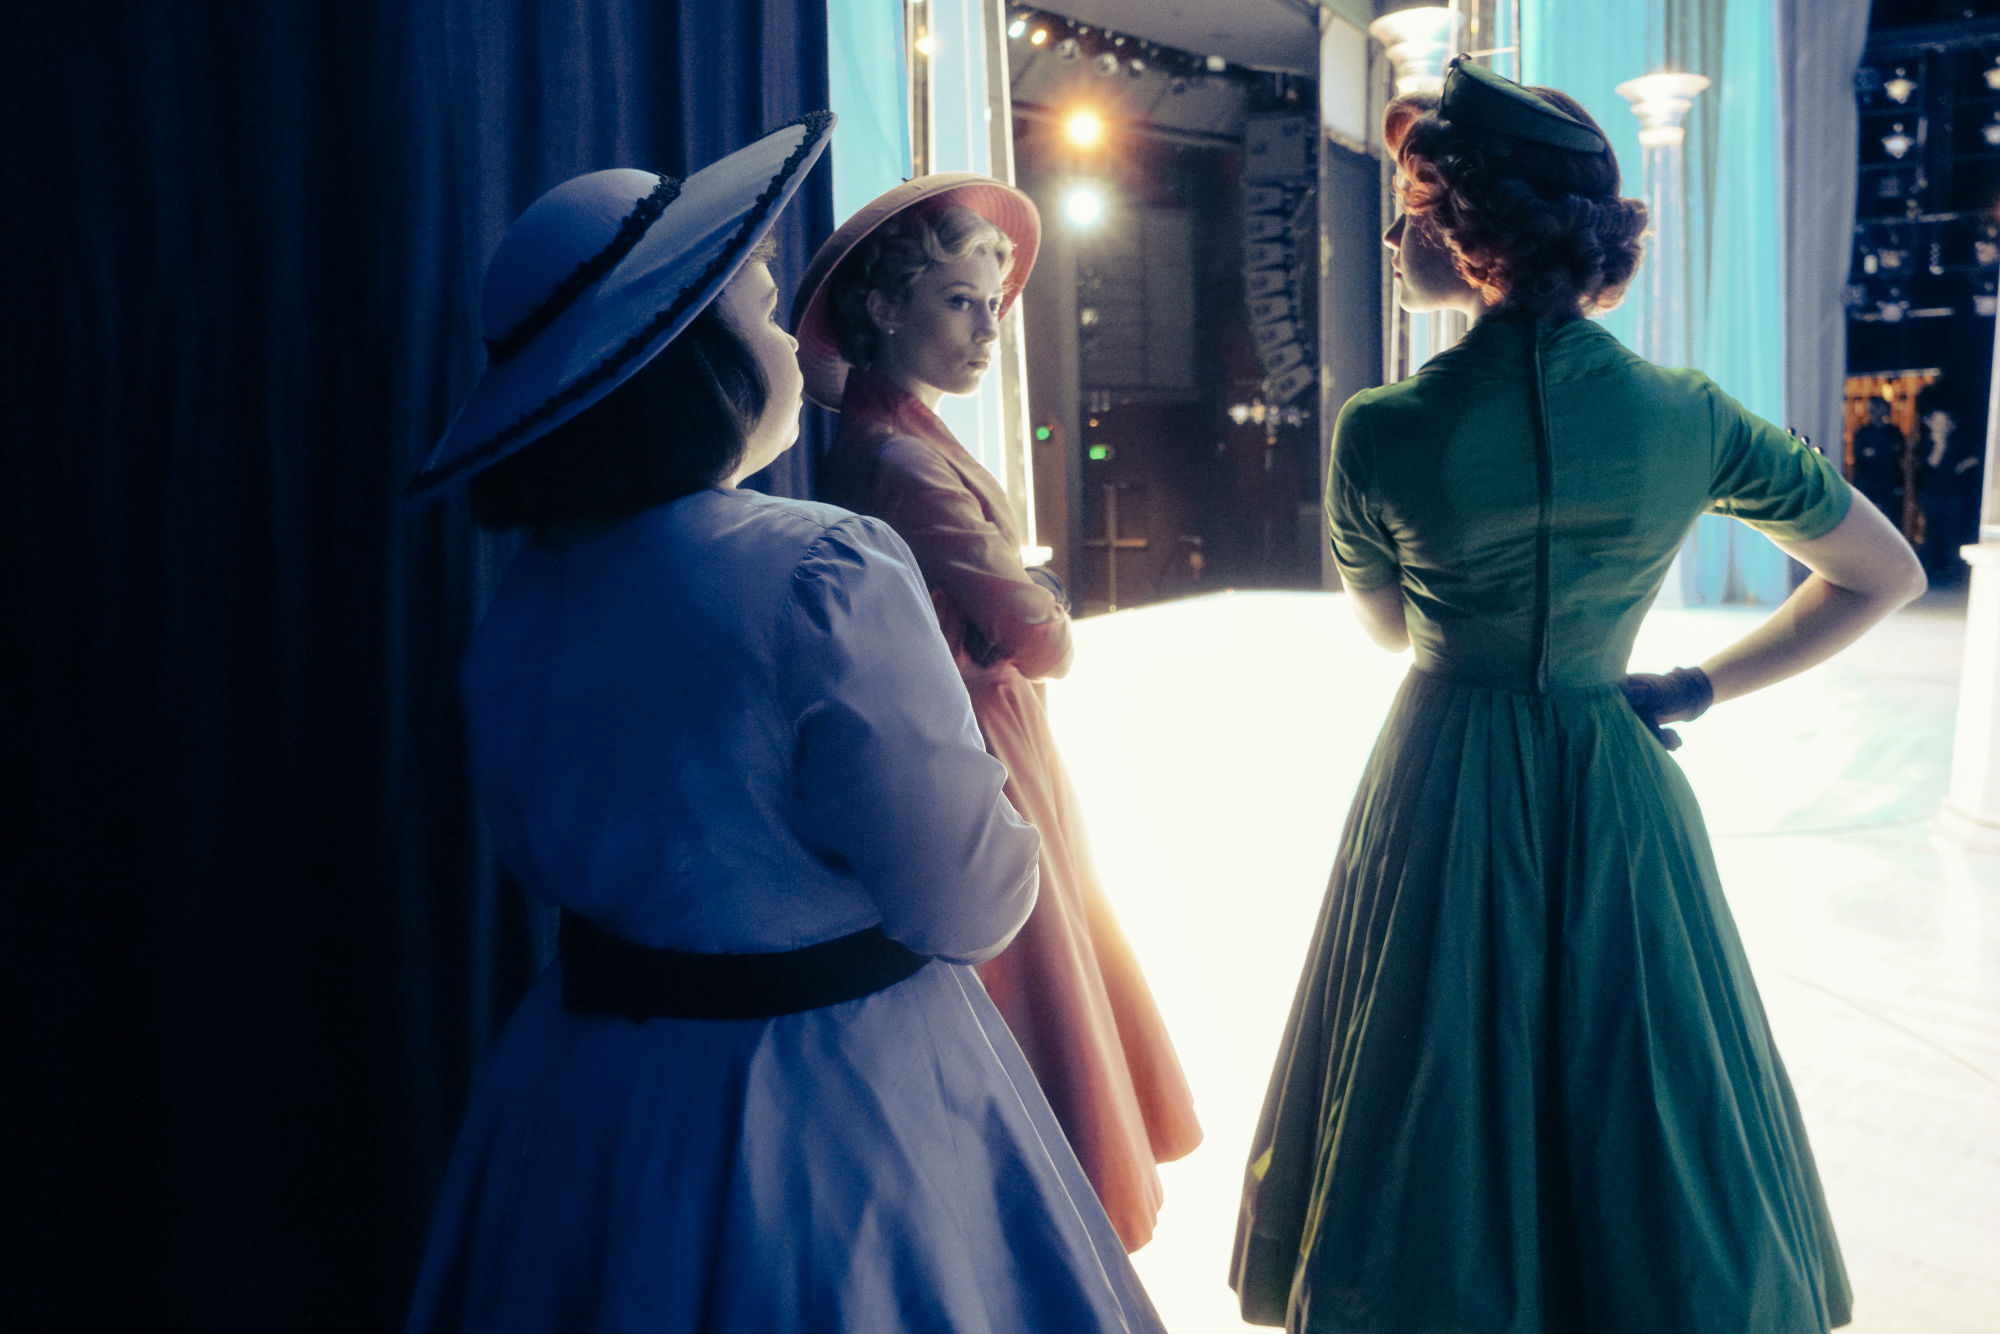 1_Kathryn McIntyre Madeleine Jones and Ellen Simpson backstage during Ladies In Black at The Canberra Theatre Centre_credit David James McCarthy